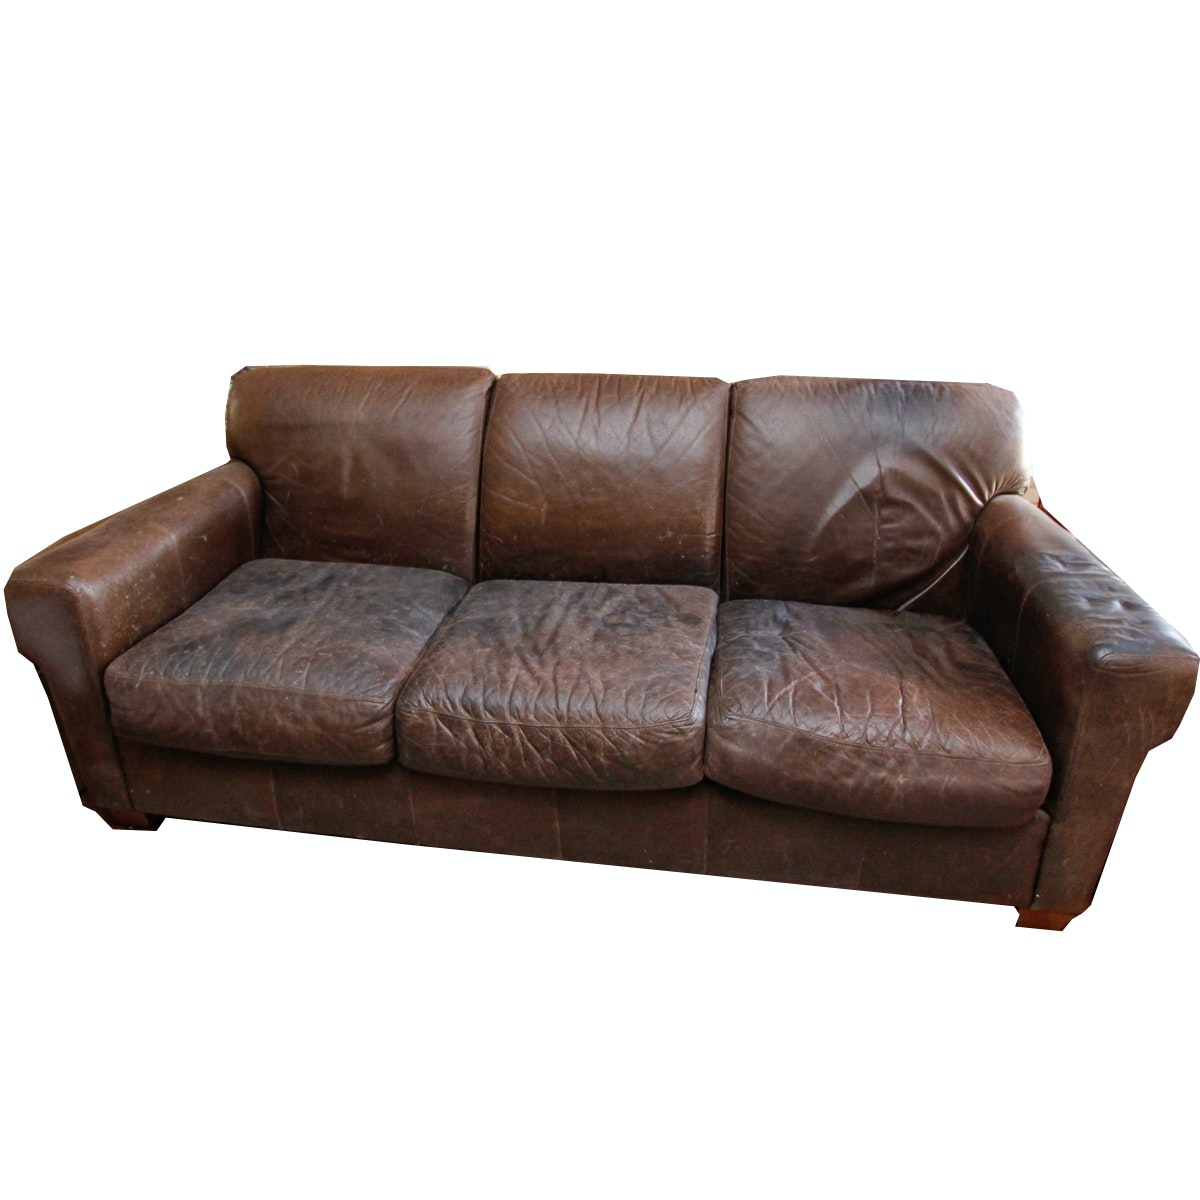 Vintage Leather Sofa By Bauhaus ...